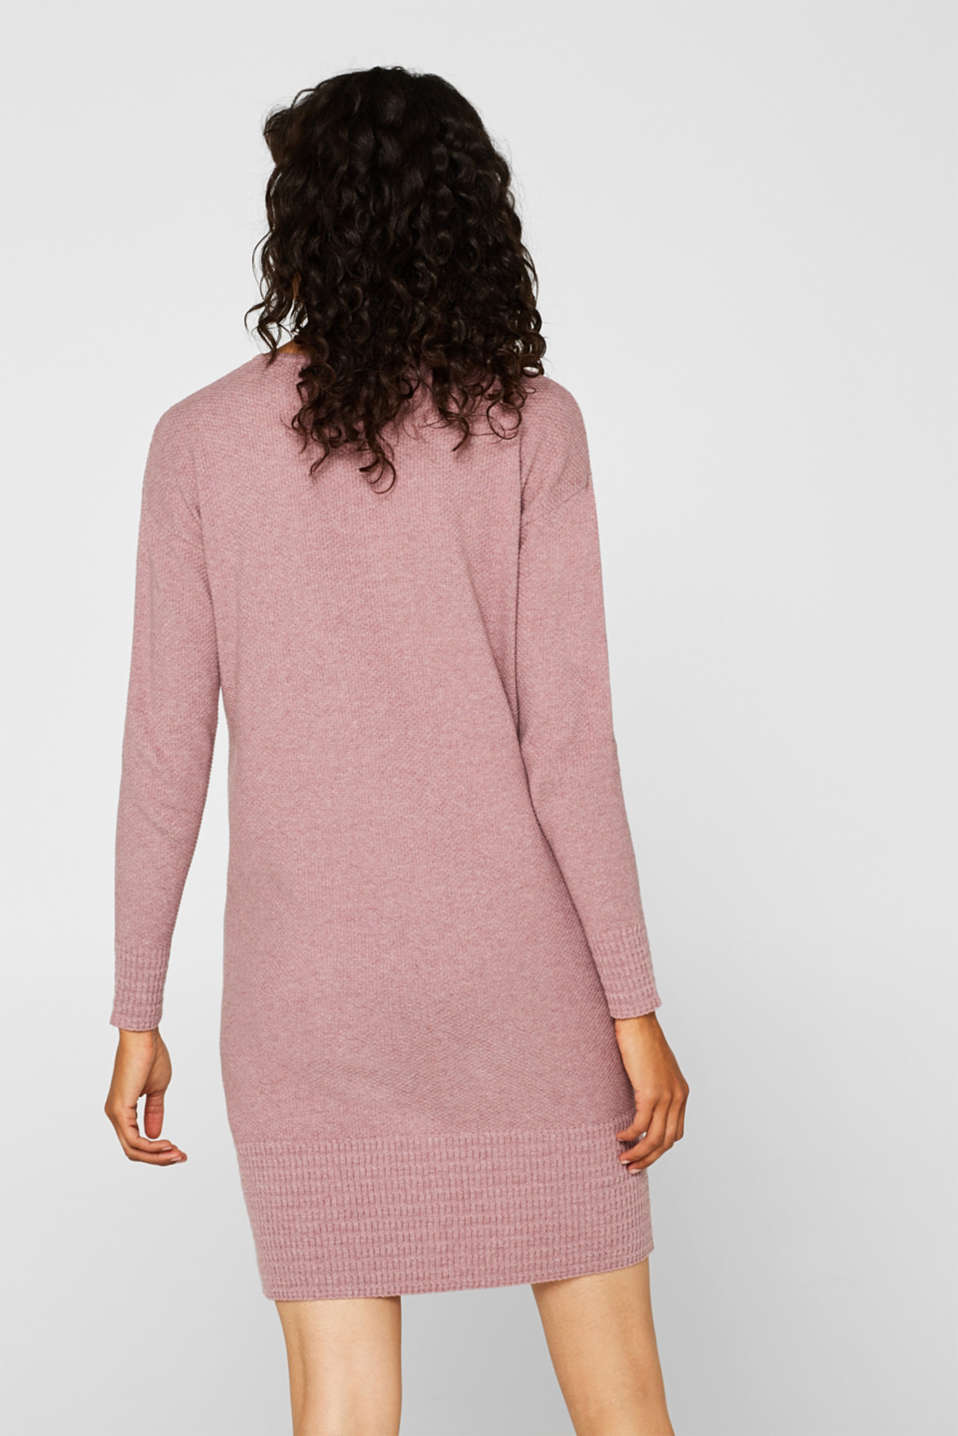 Textured knitted dress with organic cotton, MAUVE 5, detail image number 2